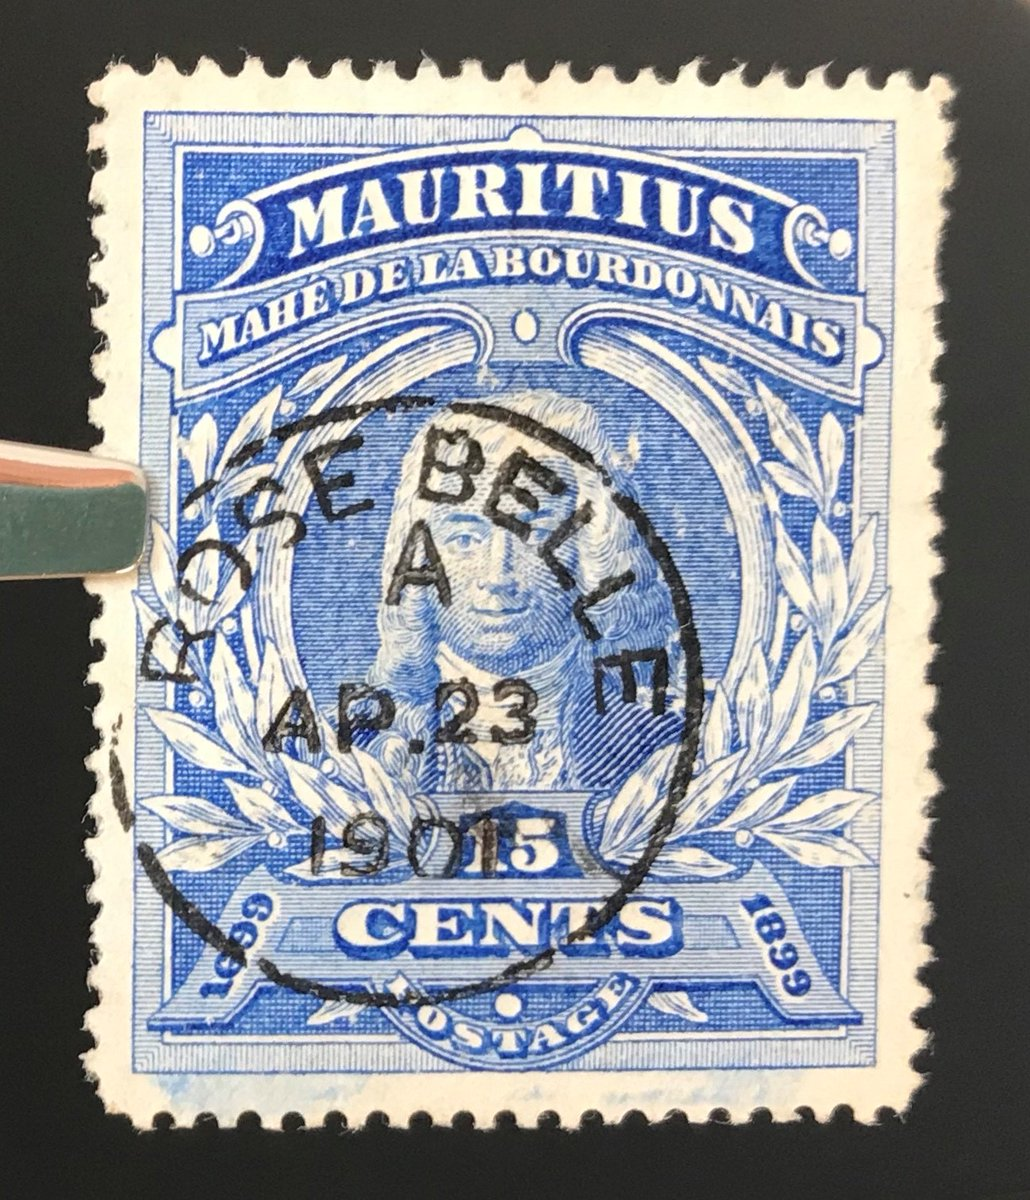 « Rose Belle » cancellation, what a beautiful name for a city! #Stamp from Mauritius, Mahé de la Bourdonnais, Admiral of France. #philately <br>http://pic.twitter.com/aXXTOGr5cx